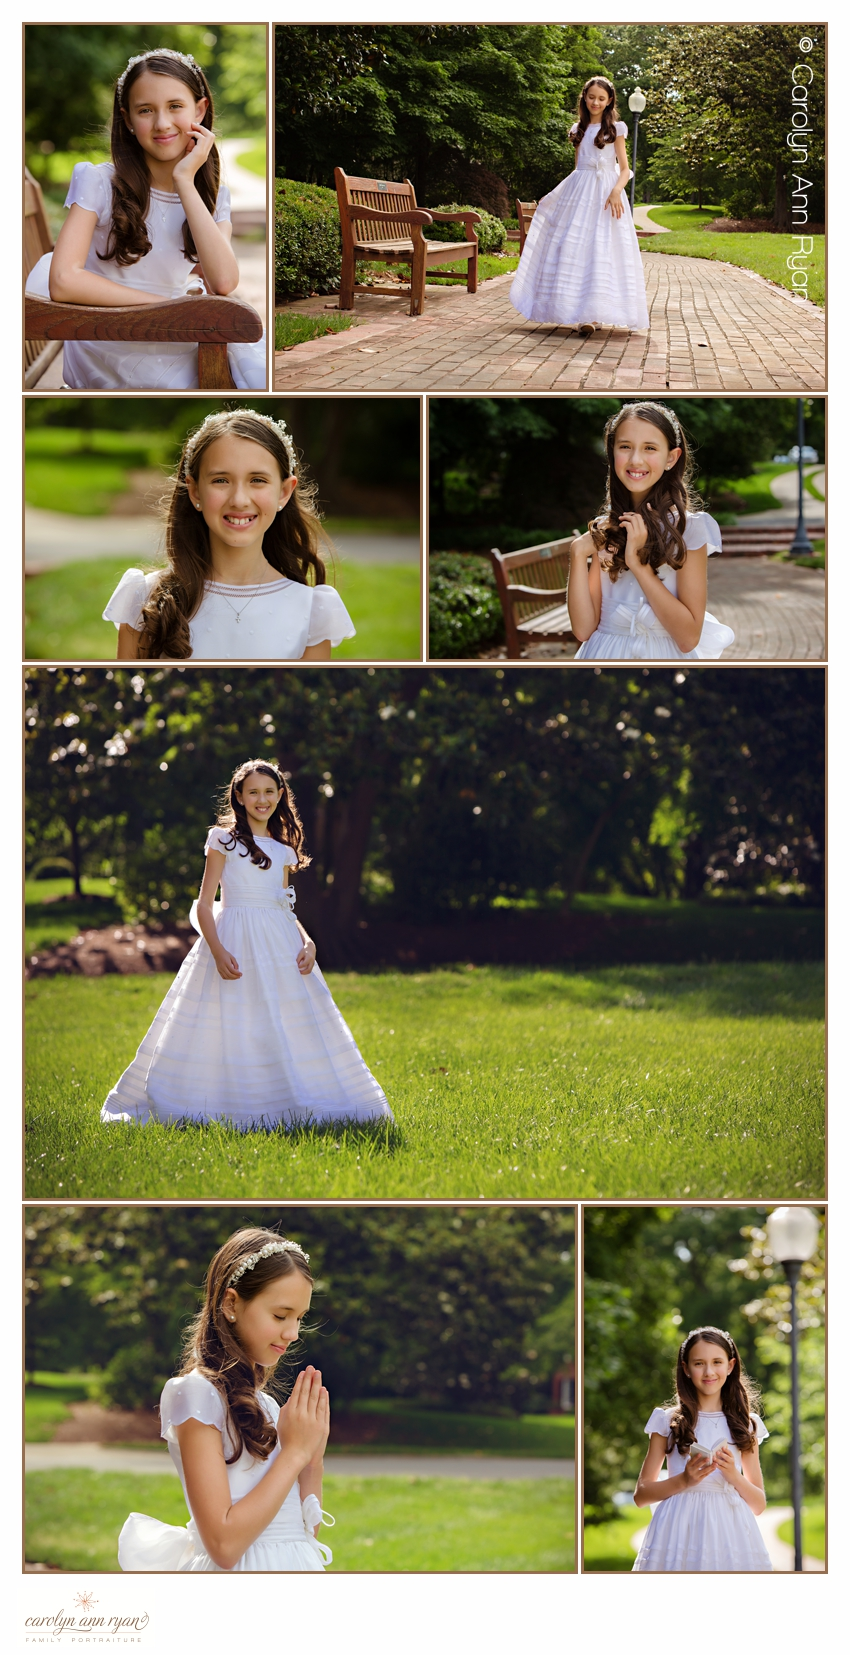 Carolyn Ann Ryan creates enchanting South Charlotte Communion Portraits